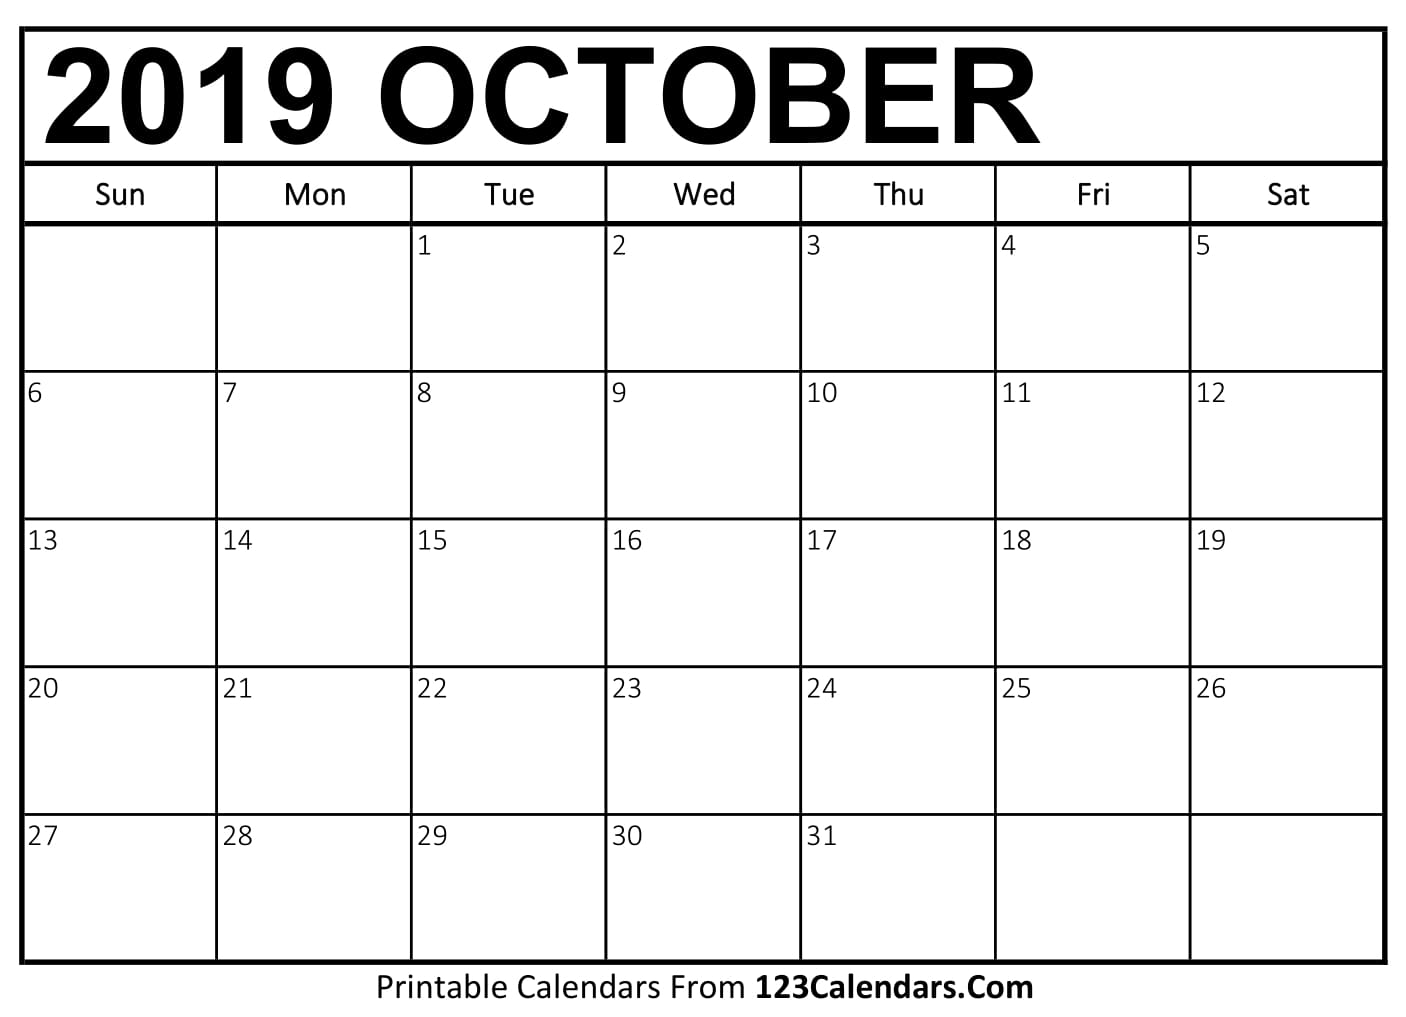 graphic regarding Free Printable October Calendars identified as Oct 2019 Printable Calendar